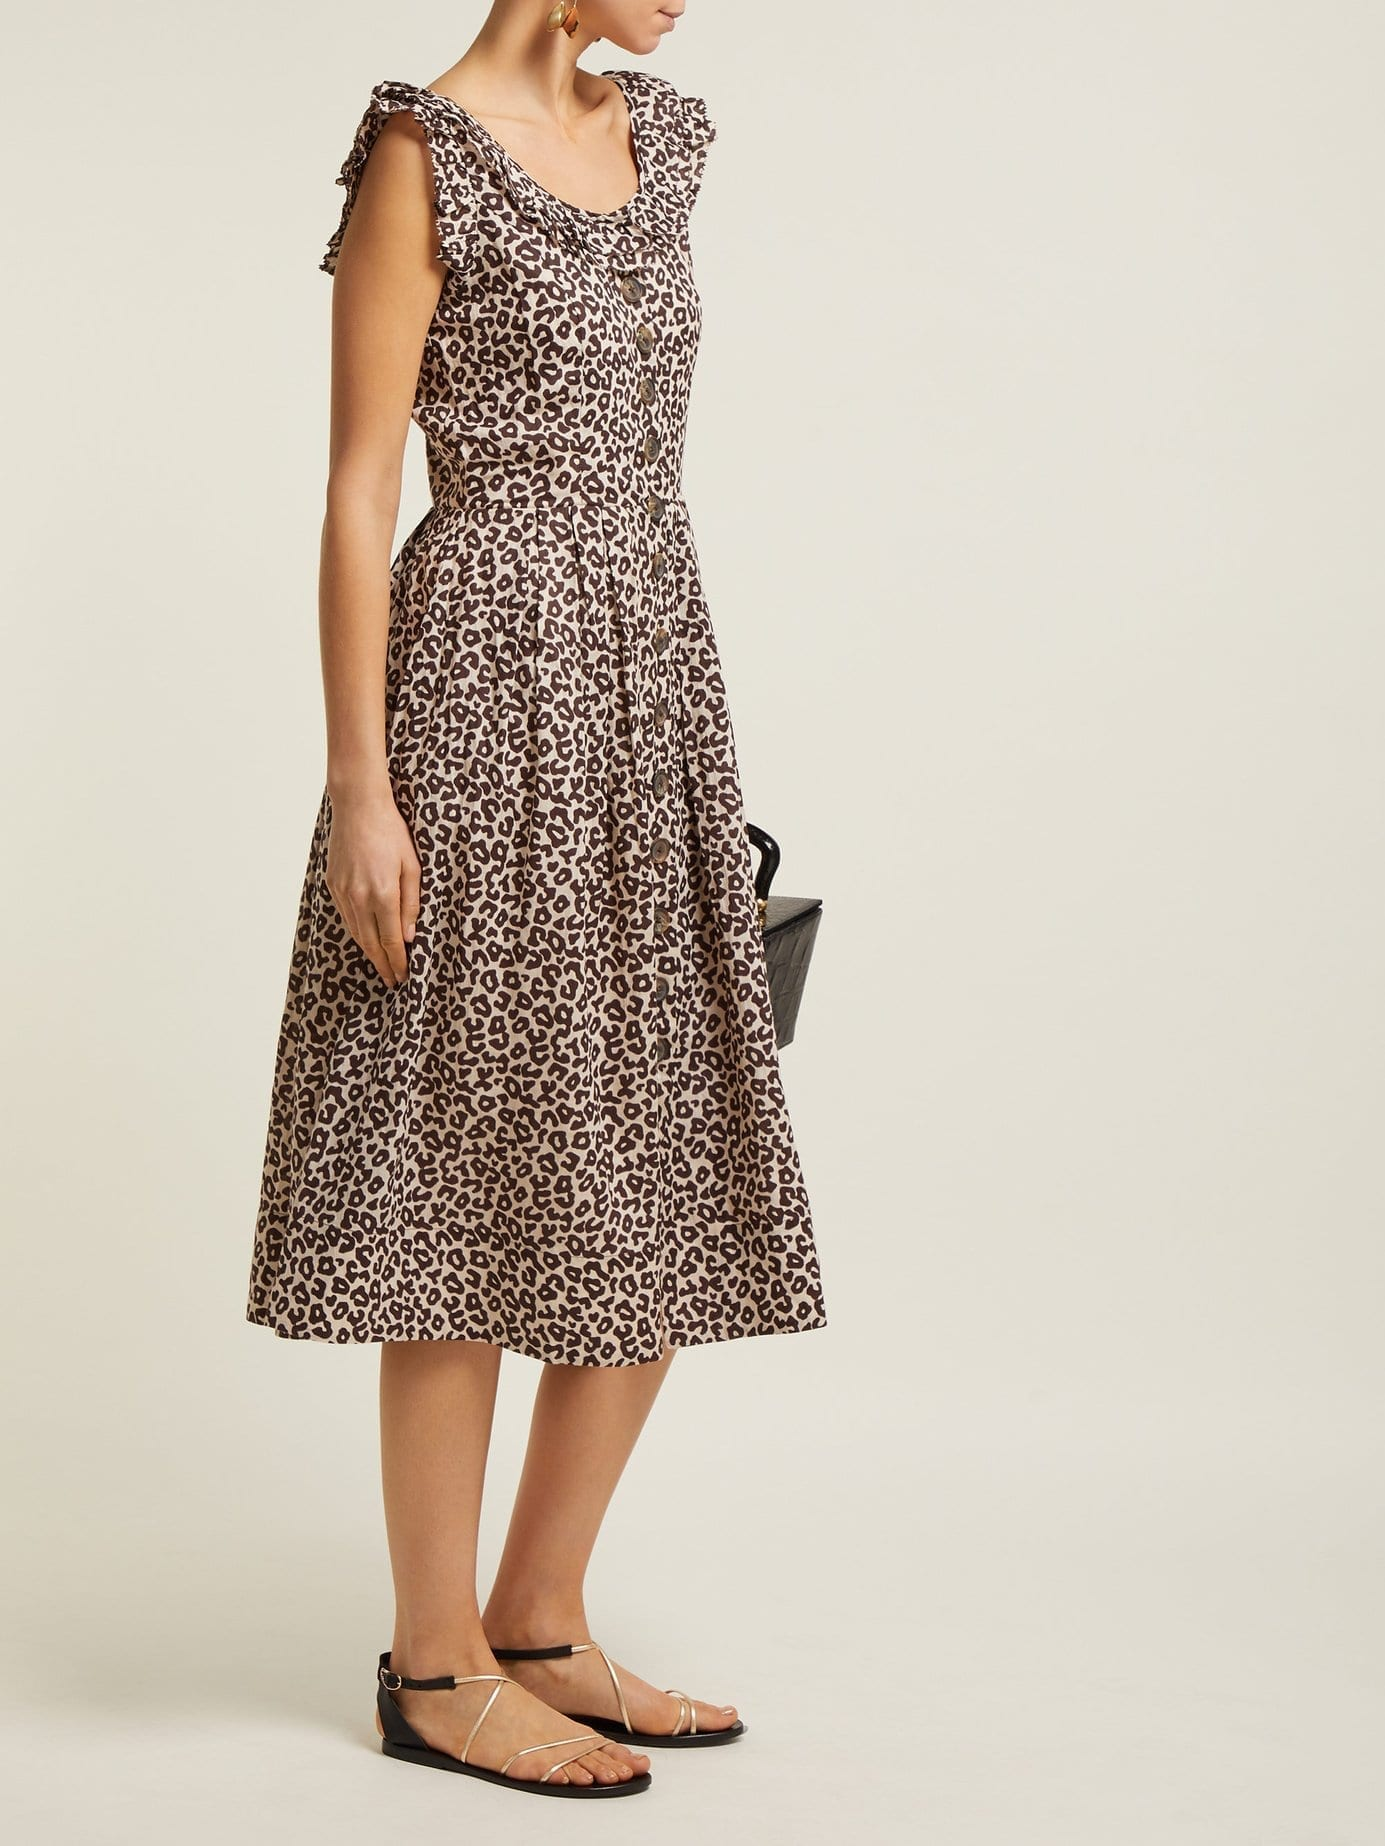 SEA Lottie Leopard-print Midi Brown Dress